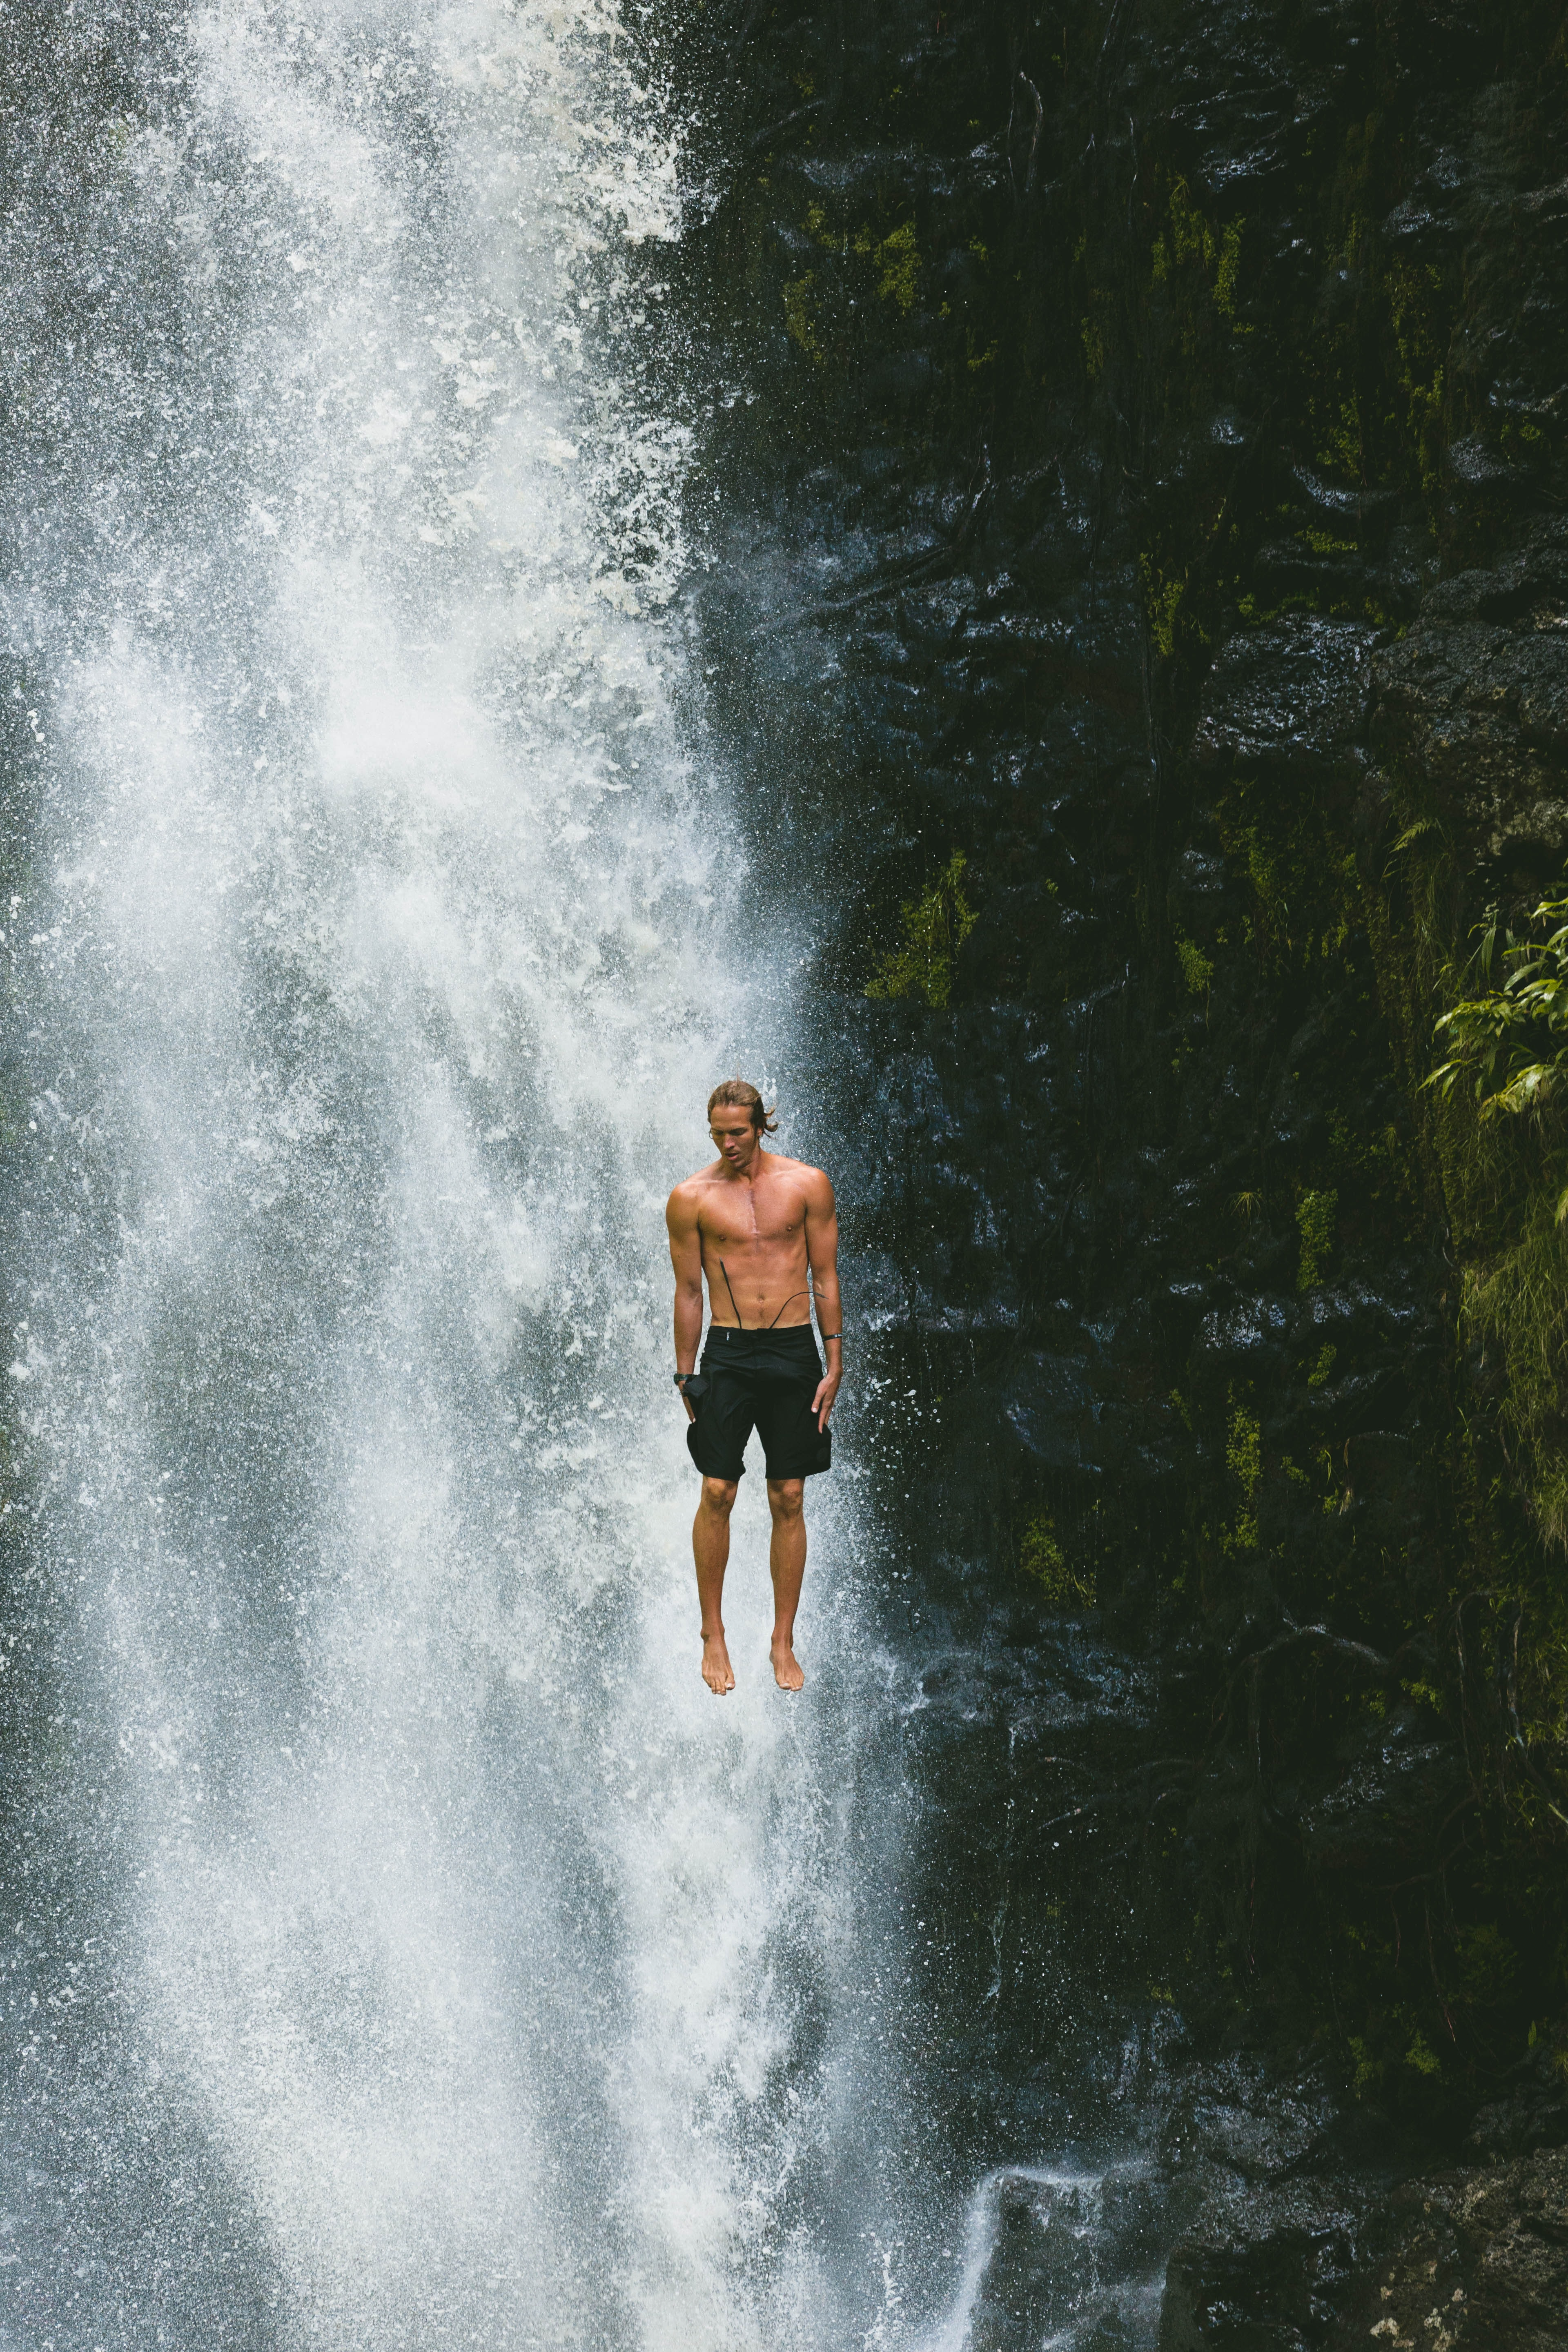 man jumps in waterfalls